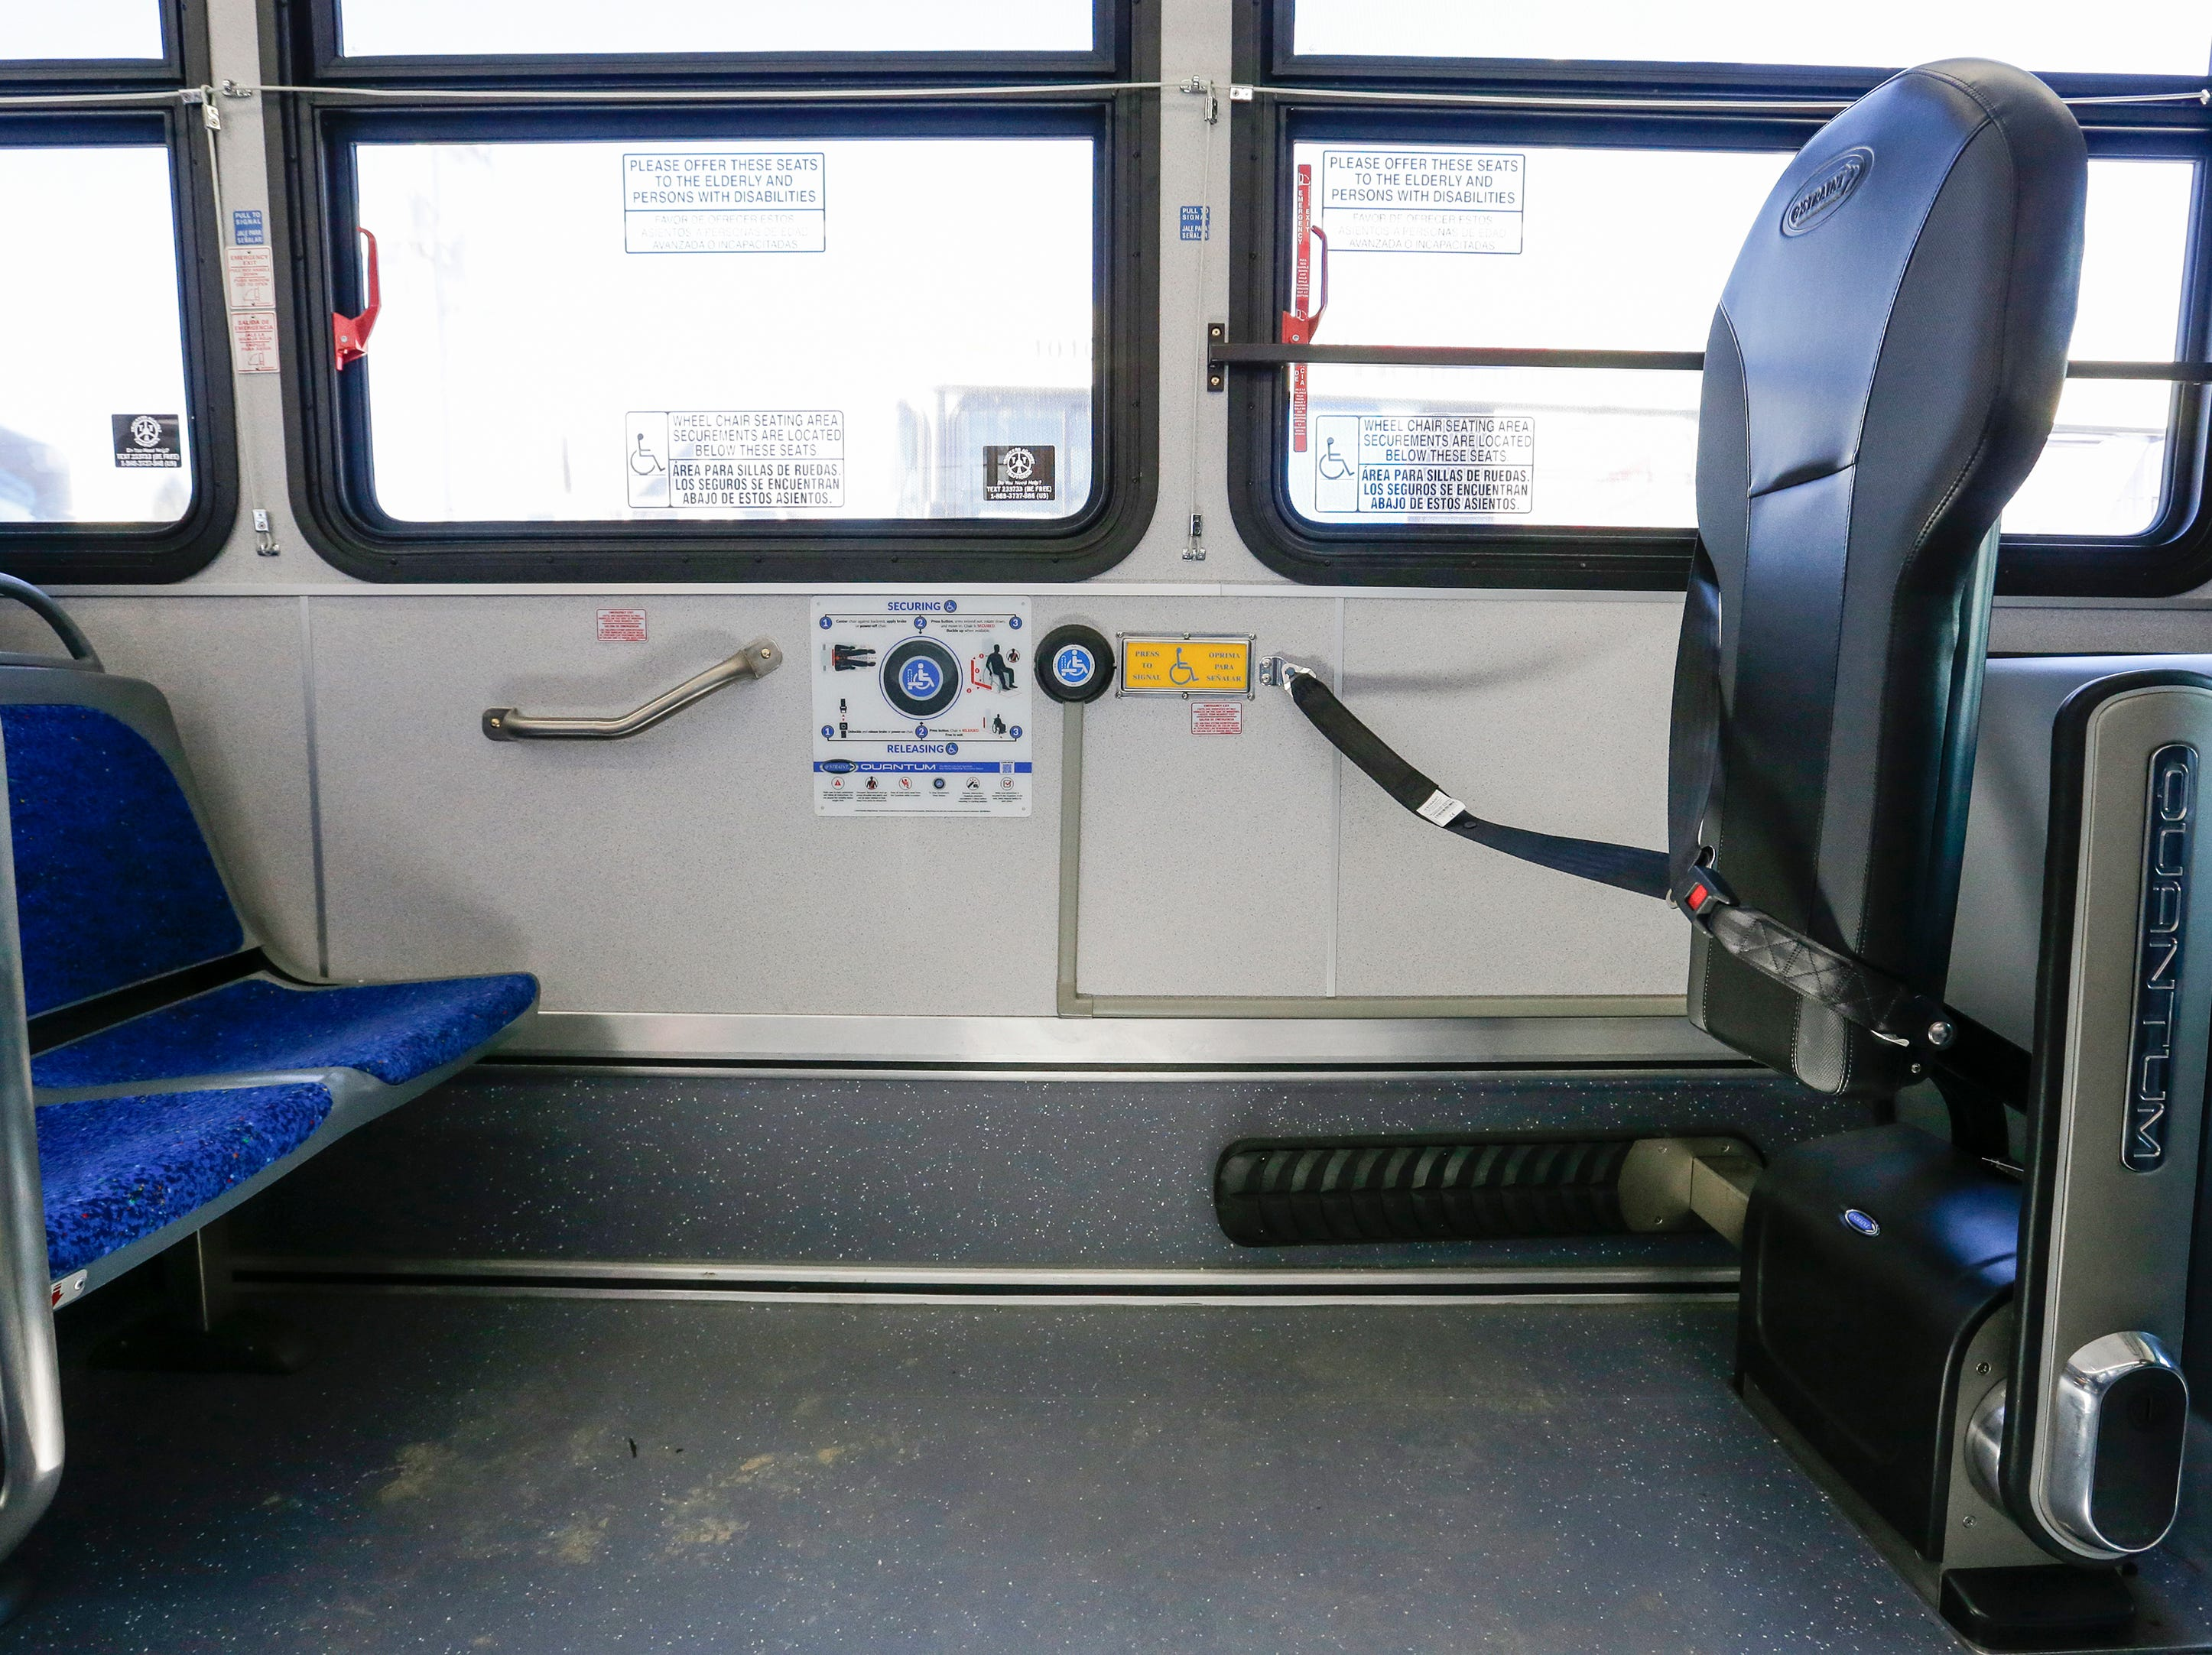 The Quantum automatic securement system for people with disabilities on board a new Maritime Metro Transit bus Monday, March 25, 2019, in Manitowoc, Wis. Joshua Clark/USA TODAY NETWORK-Wisconsin